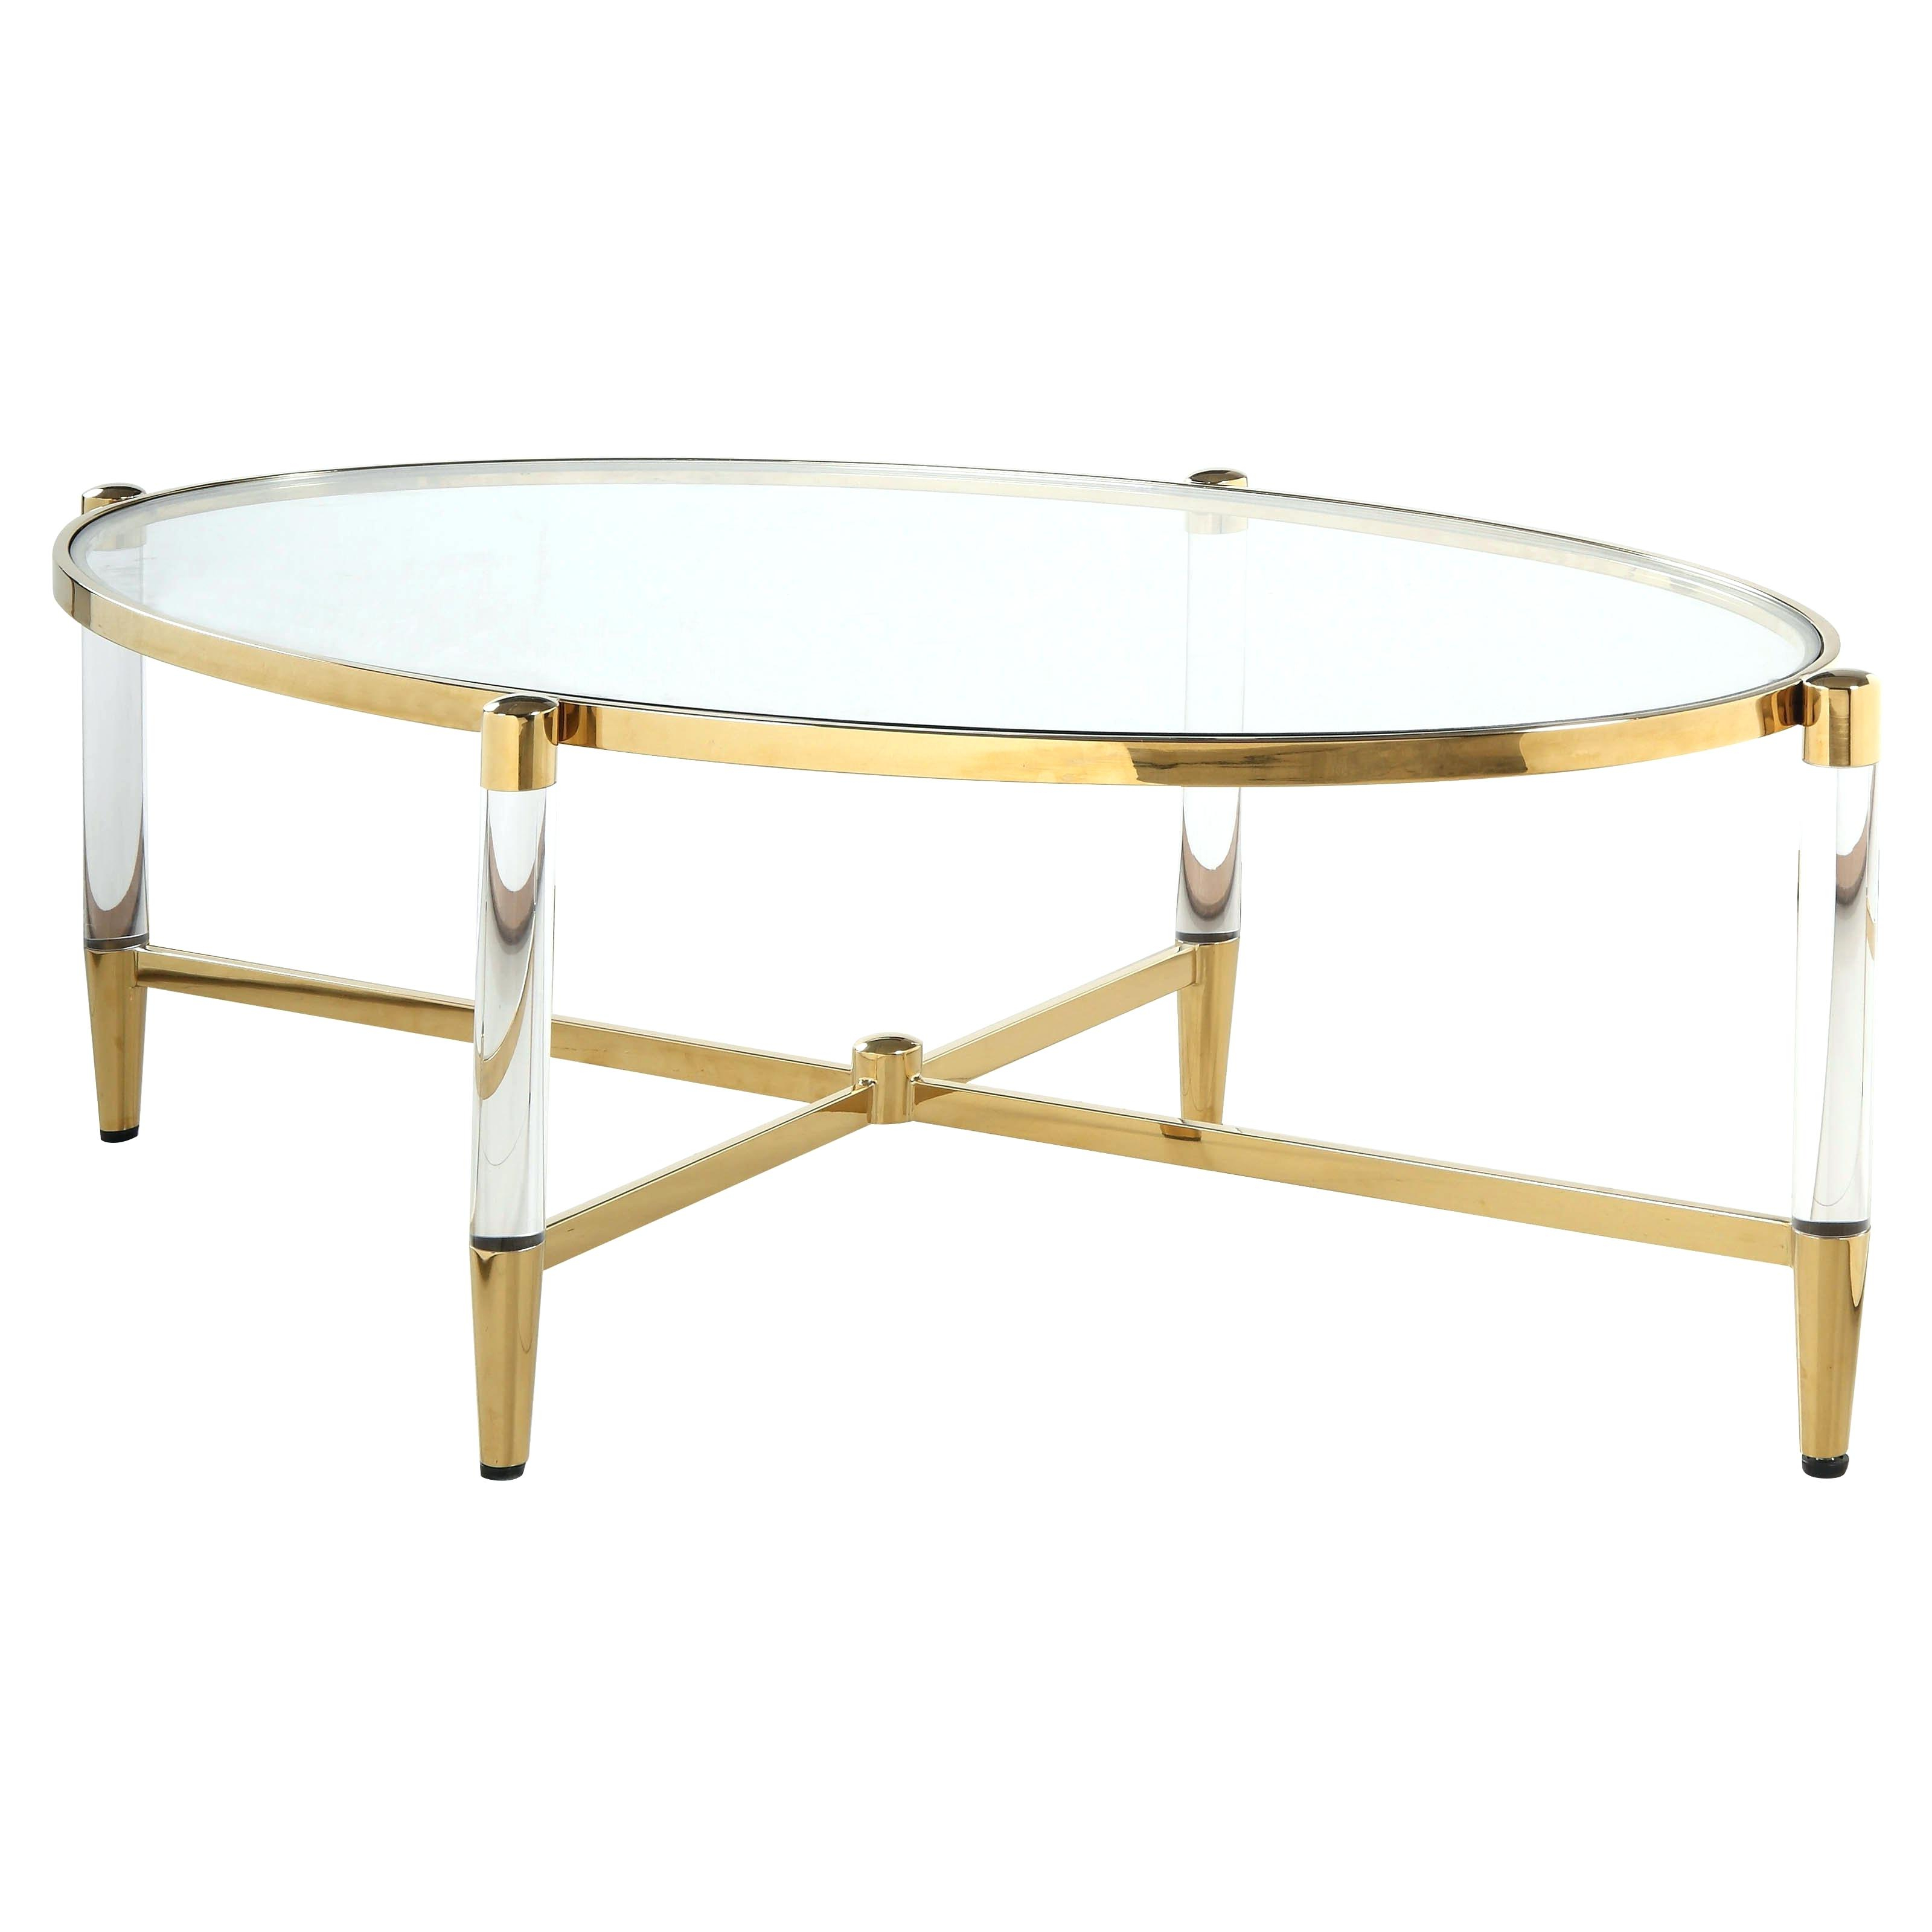 2020 Propel Modern Chrome Oval Coffee Tables Within Glass Oval Coffee Table – Thefeelancer.co (Gallery 8 of 20)